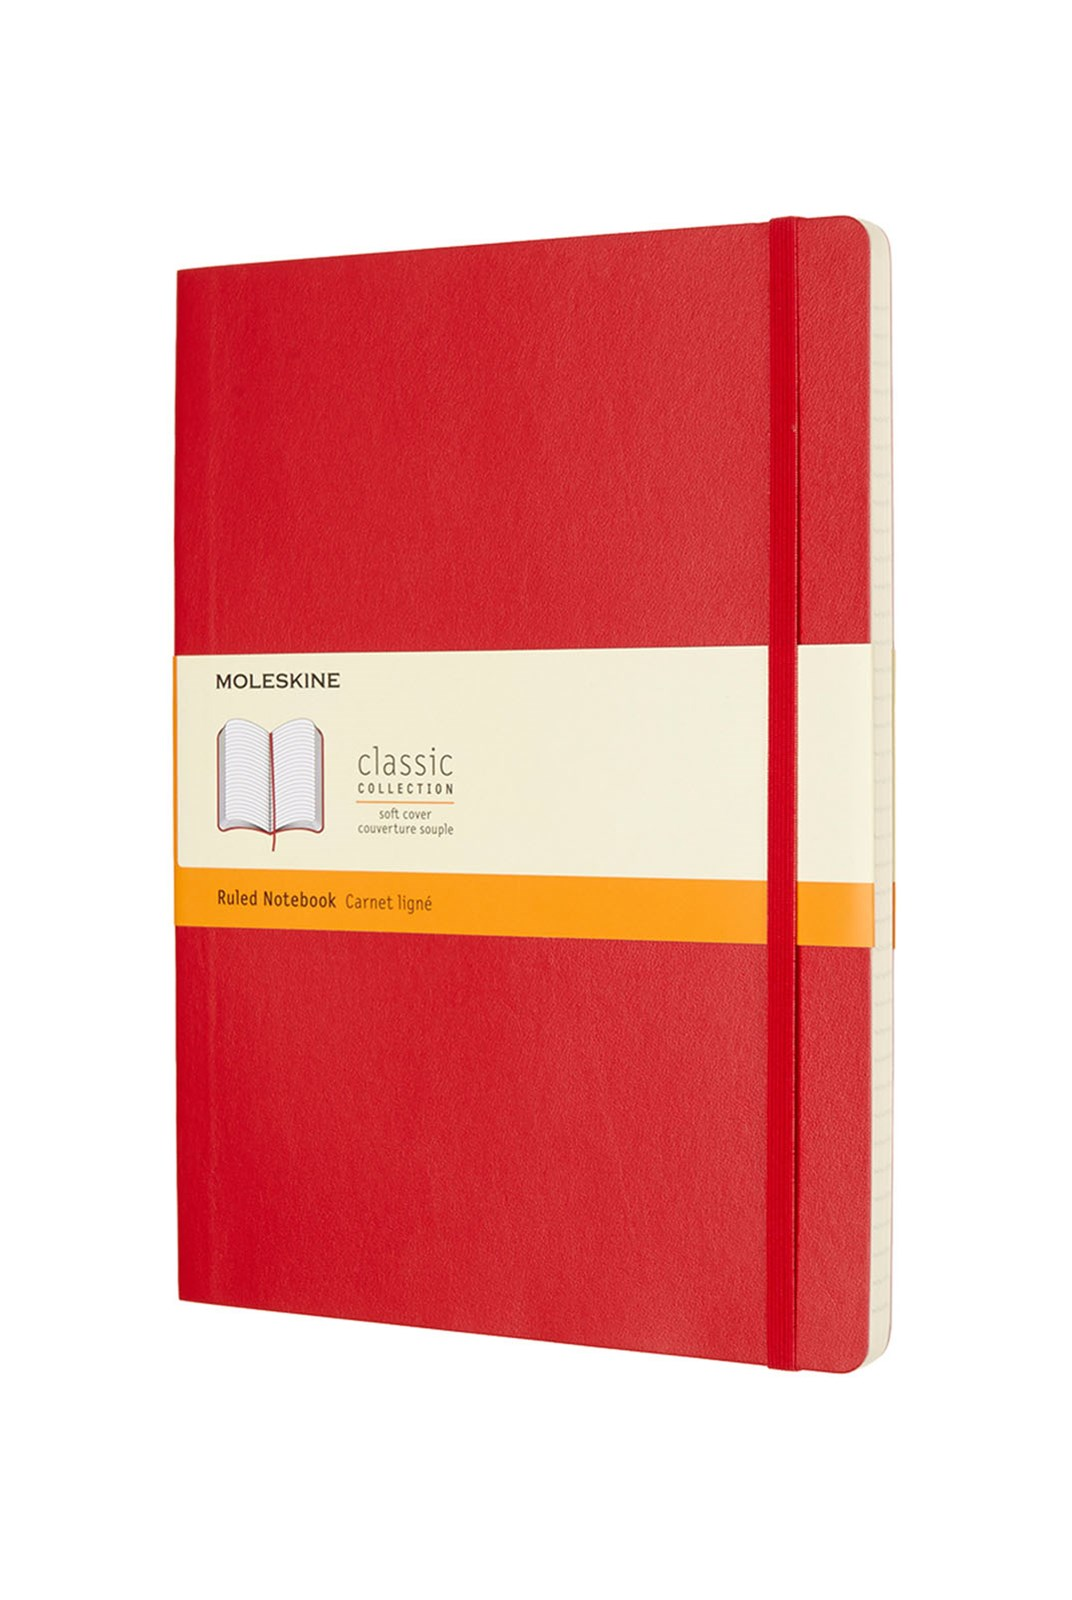 Moleskine - Classic Soft Cover Notebook - Ruled - Extra Large - Scarlet Red